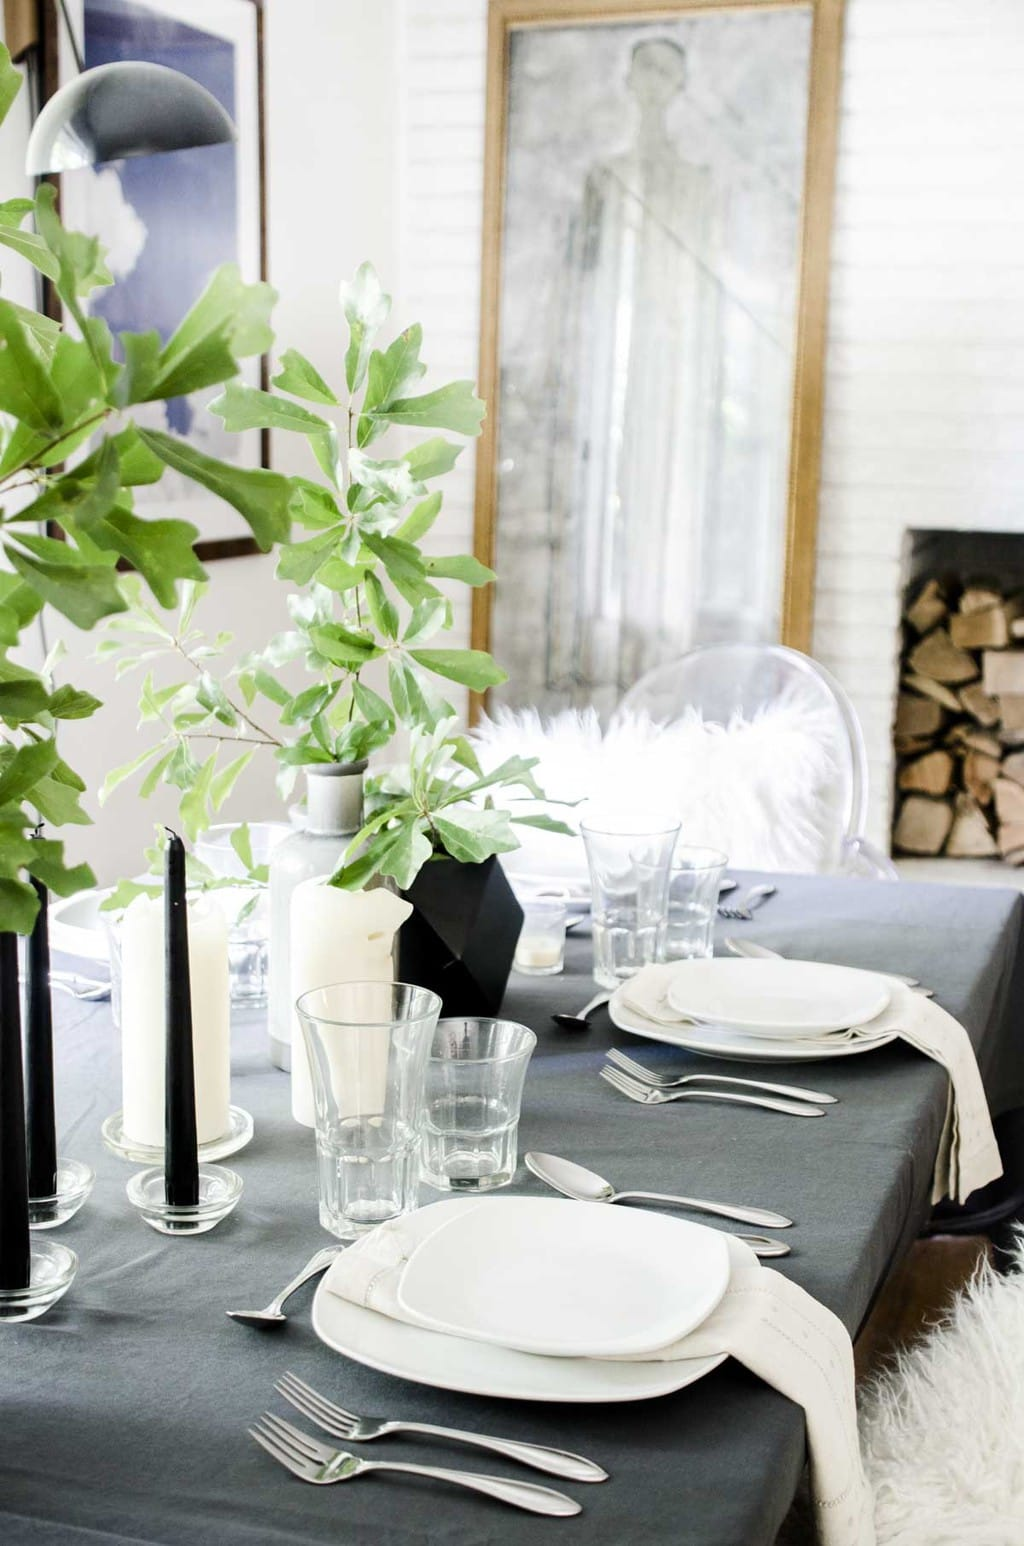 Scandinavian-inspired black, white, and grey summer table setting with simple green arrangements via @thouswellblog